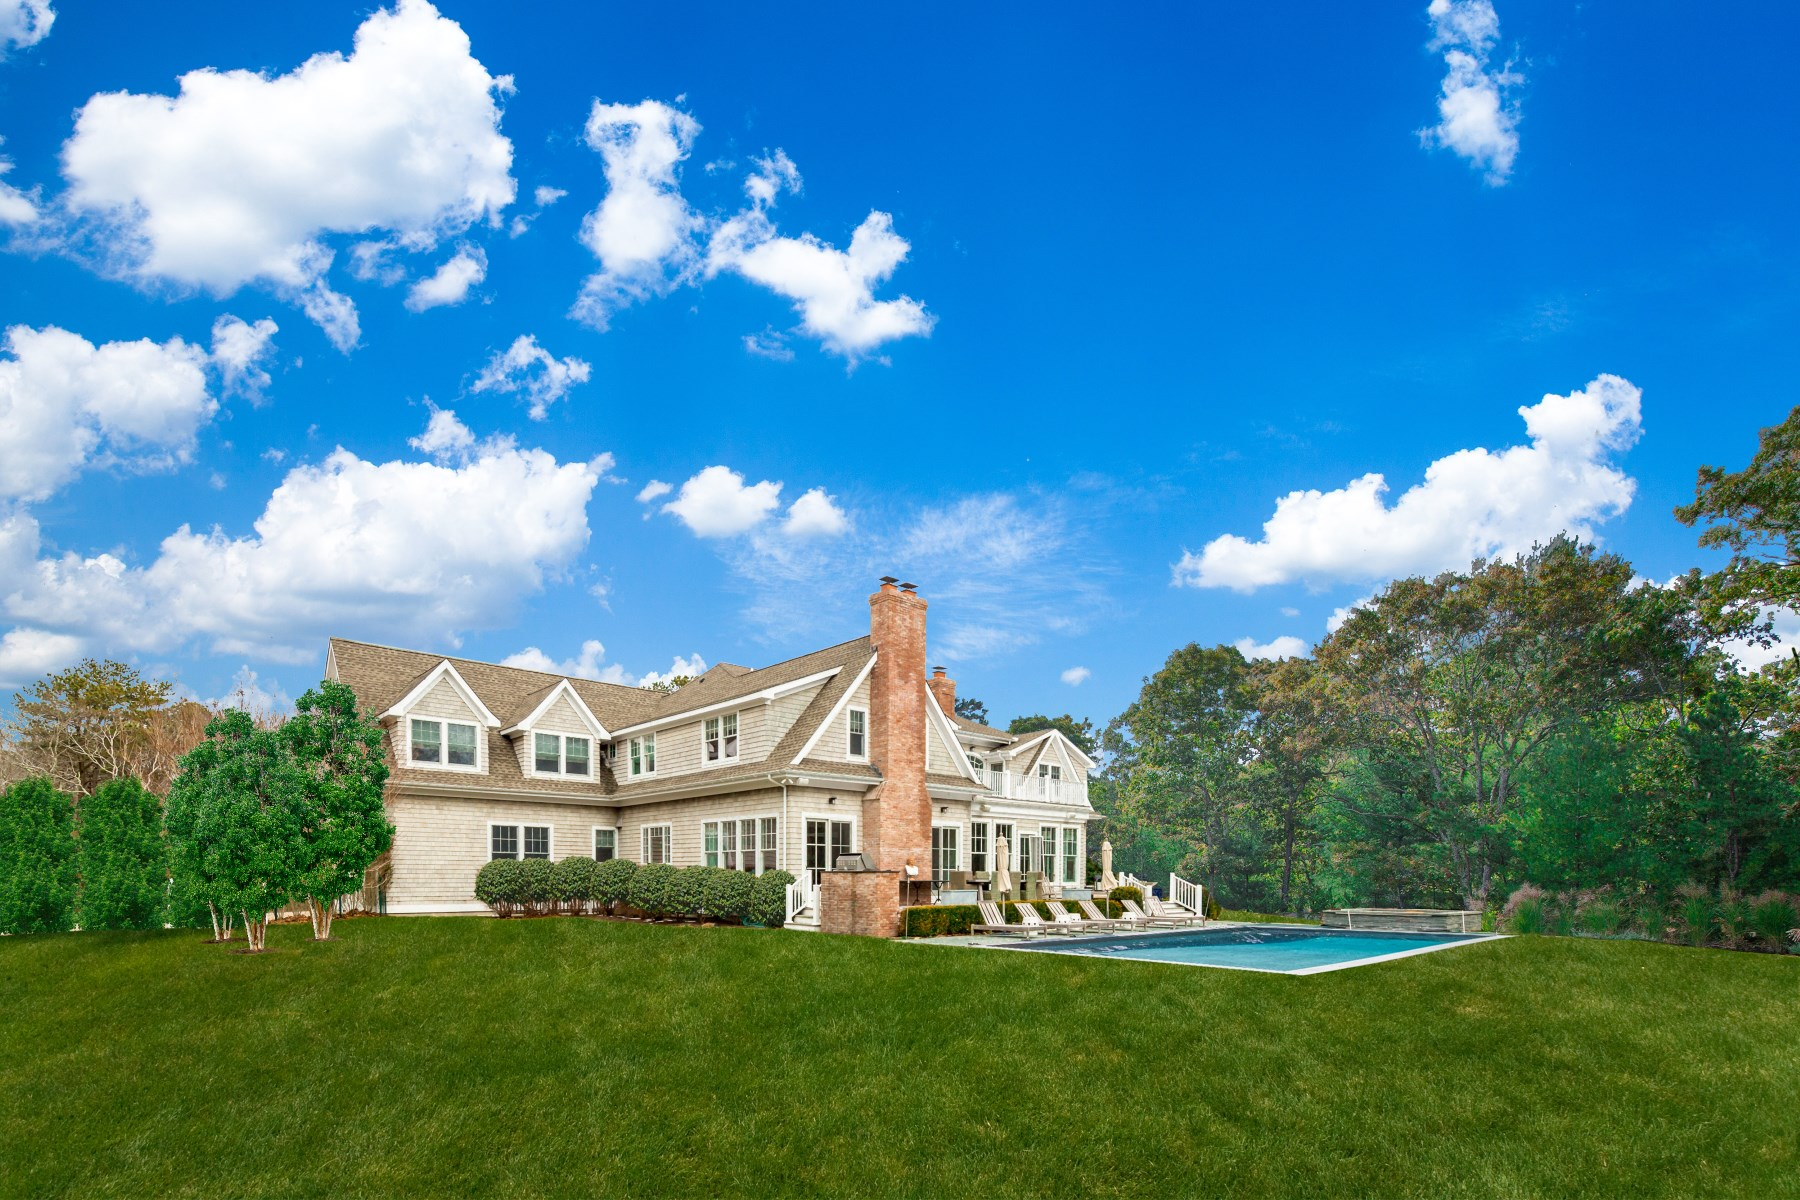 Single Family Home for Sale at GORGEOUS DESIGNER ESTATE, ALMOST NEW 388 Hands Creek Road, East Hampton, New York, 11937 United States